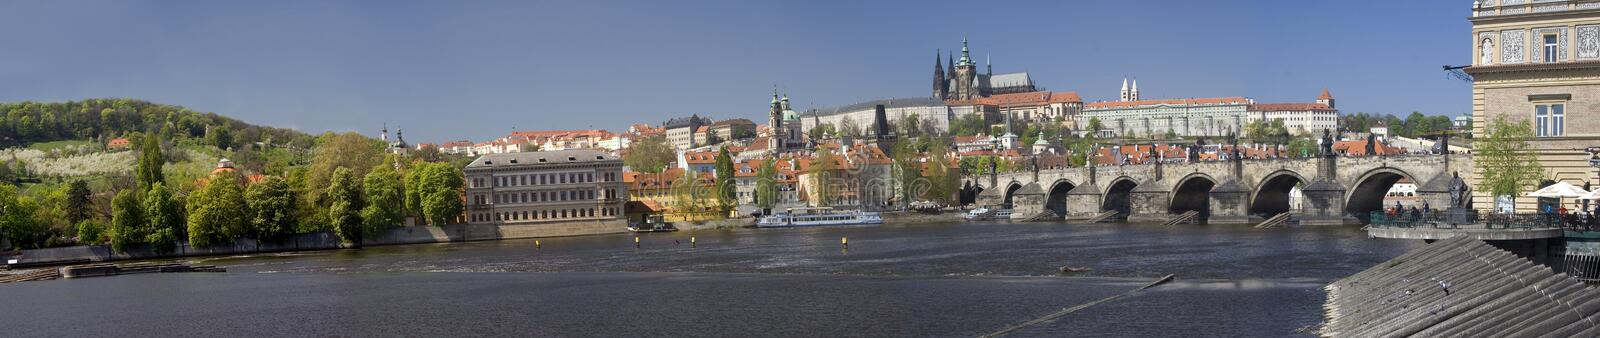 Prague Castle Panorama Stock Photography